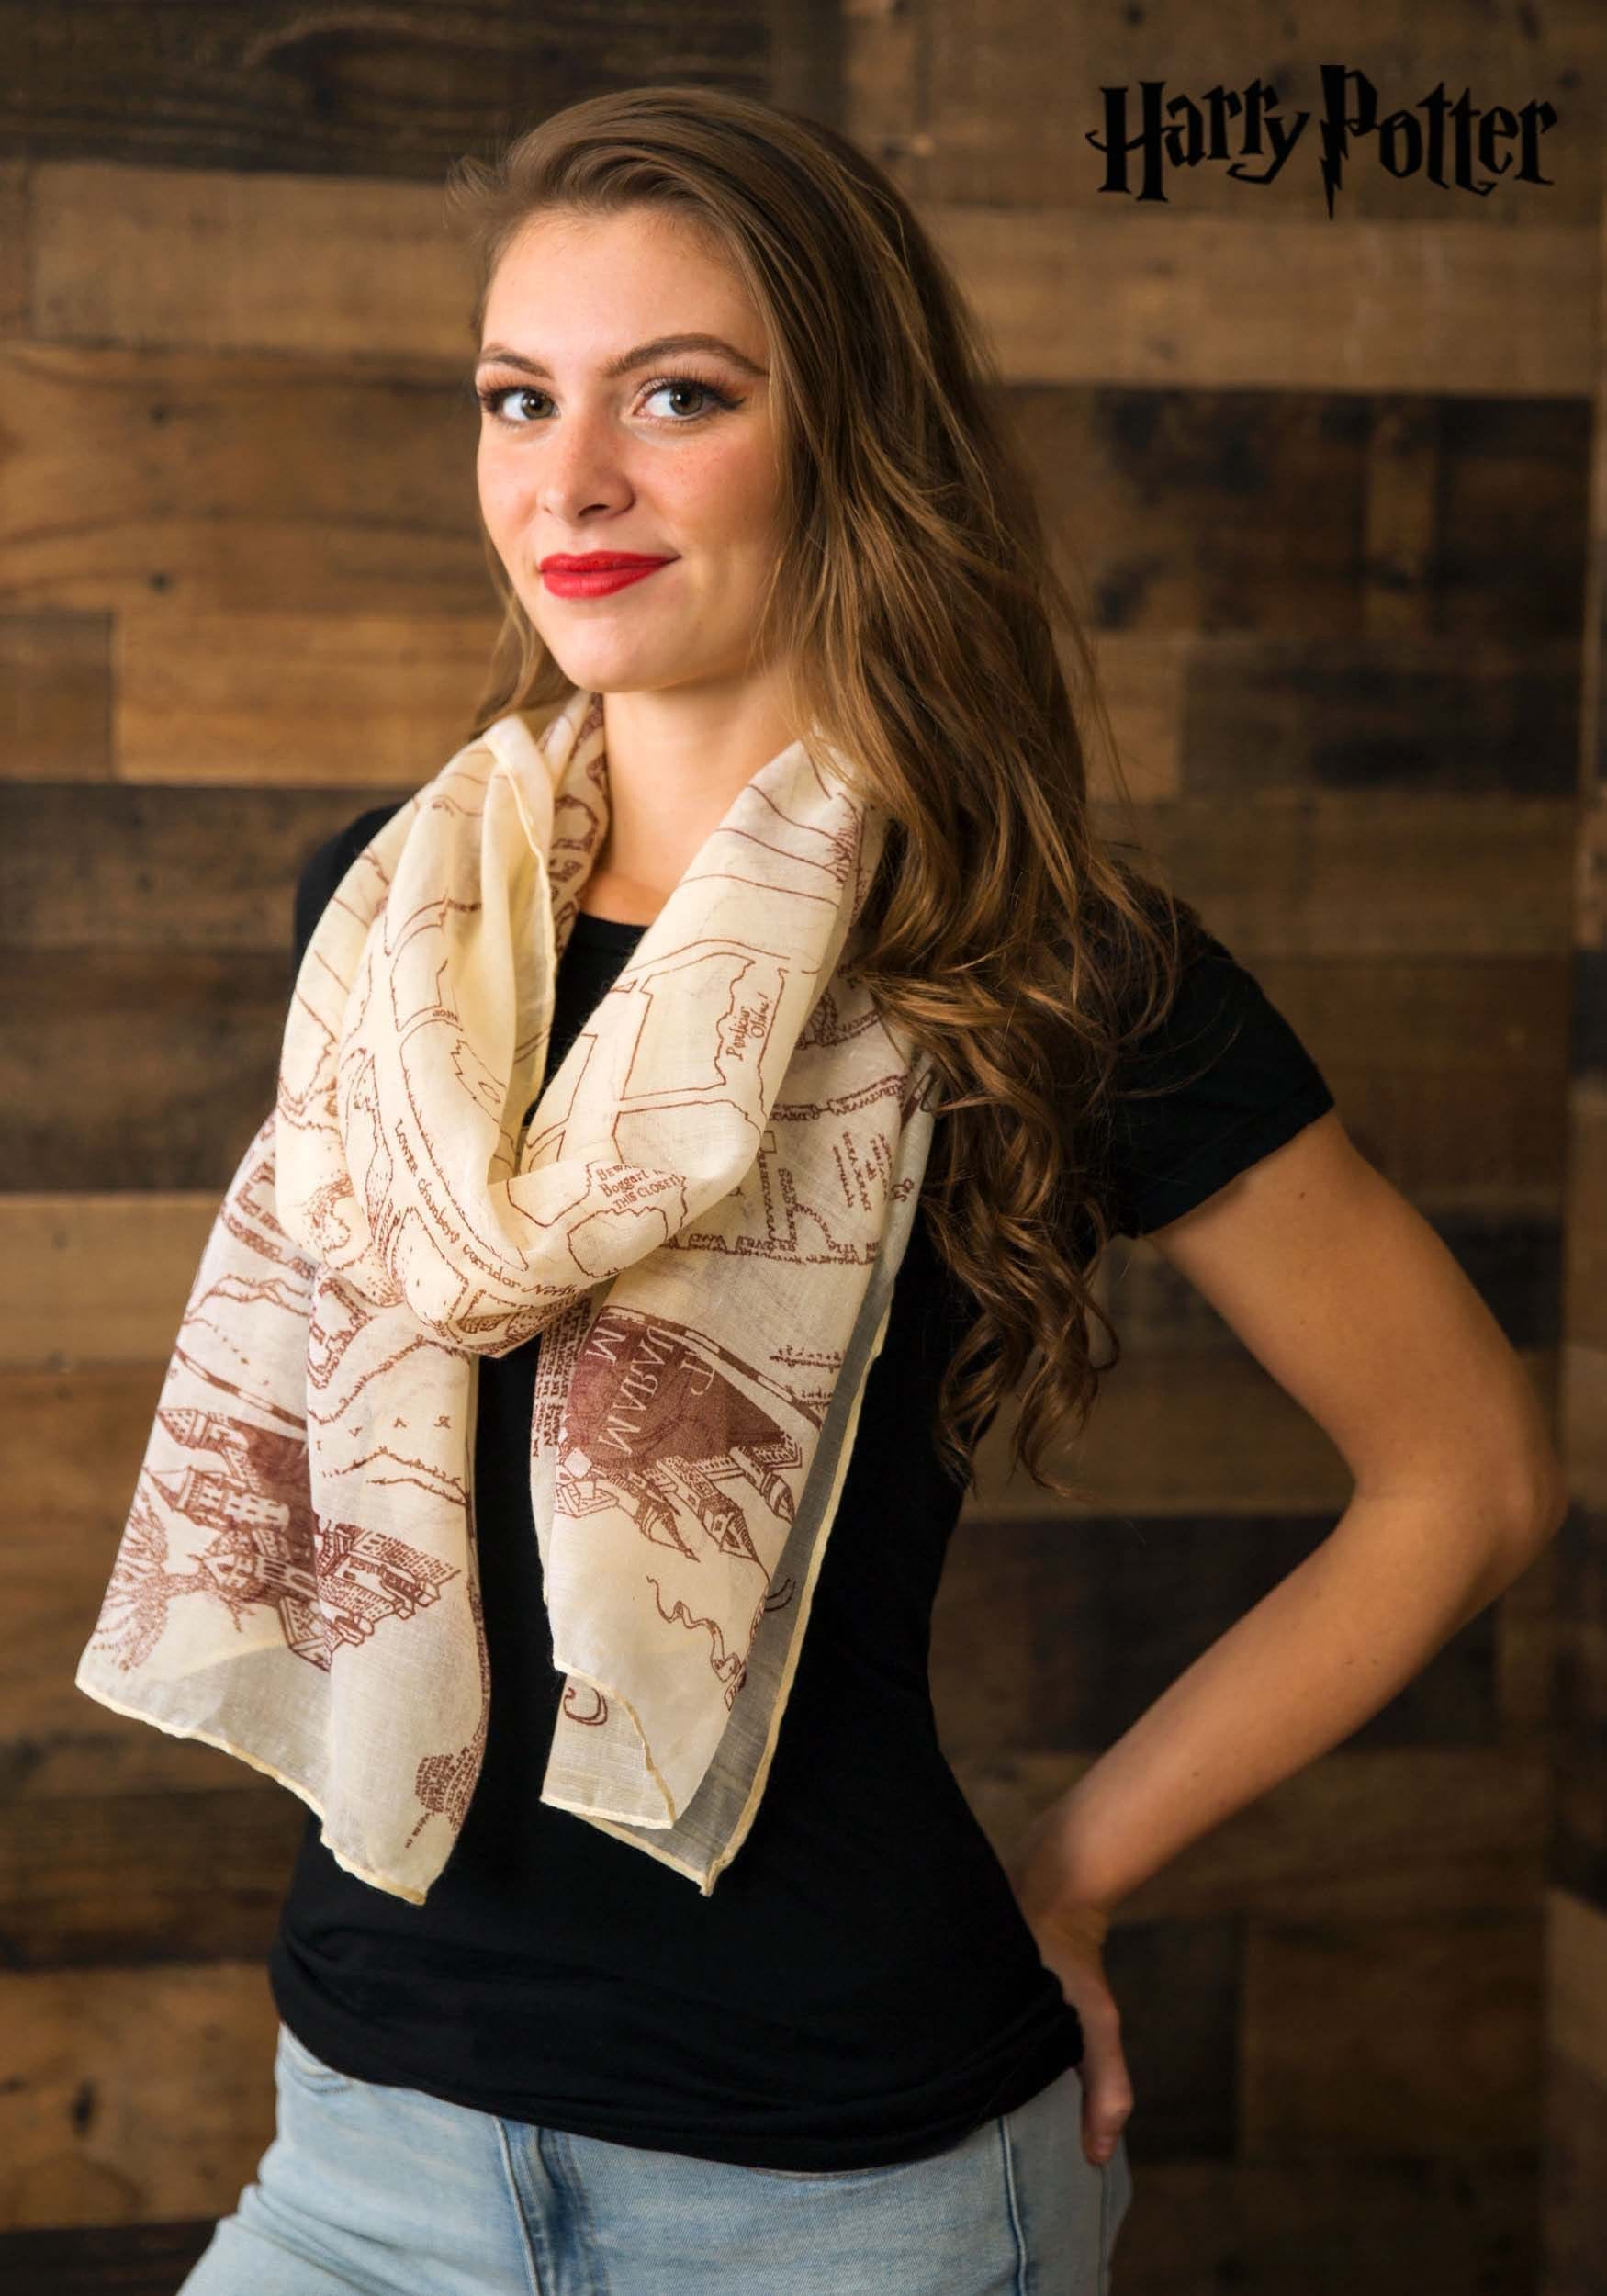 Harry potter marauders map scarf harry potter maurauders map scarf gumiabroncs Image collections